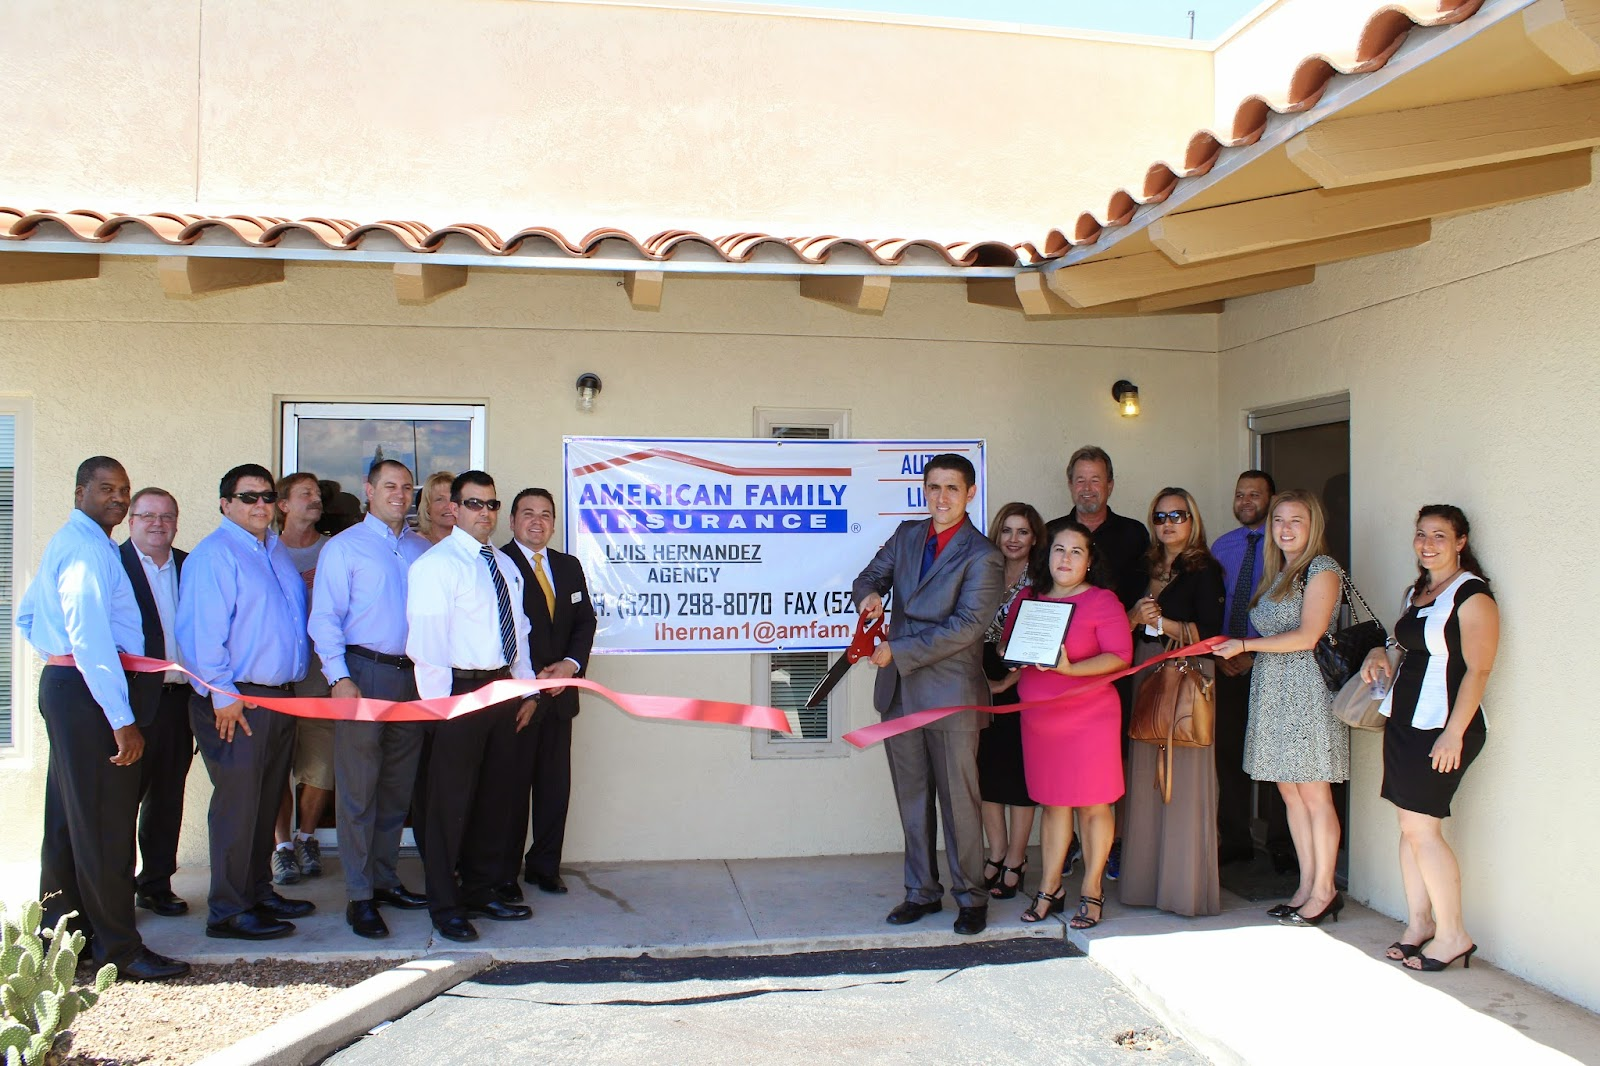 Luis Hernandez Agency, American Family Insurance - My Team is here to serve and help you with your Auto, Home, Life and Business insurance needs.  As residents of your community, we understand how important it is to be there for you, our trusted friends and neighbors.  Together, we are building strong partnerships that help everyone succeed.